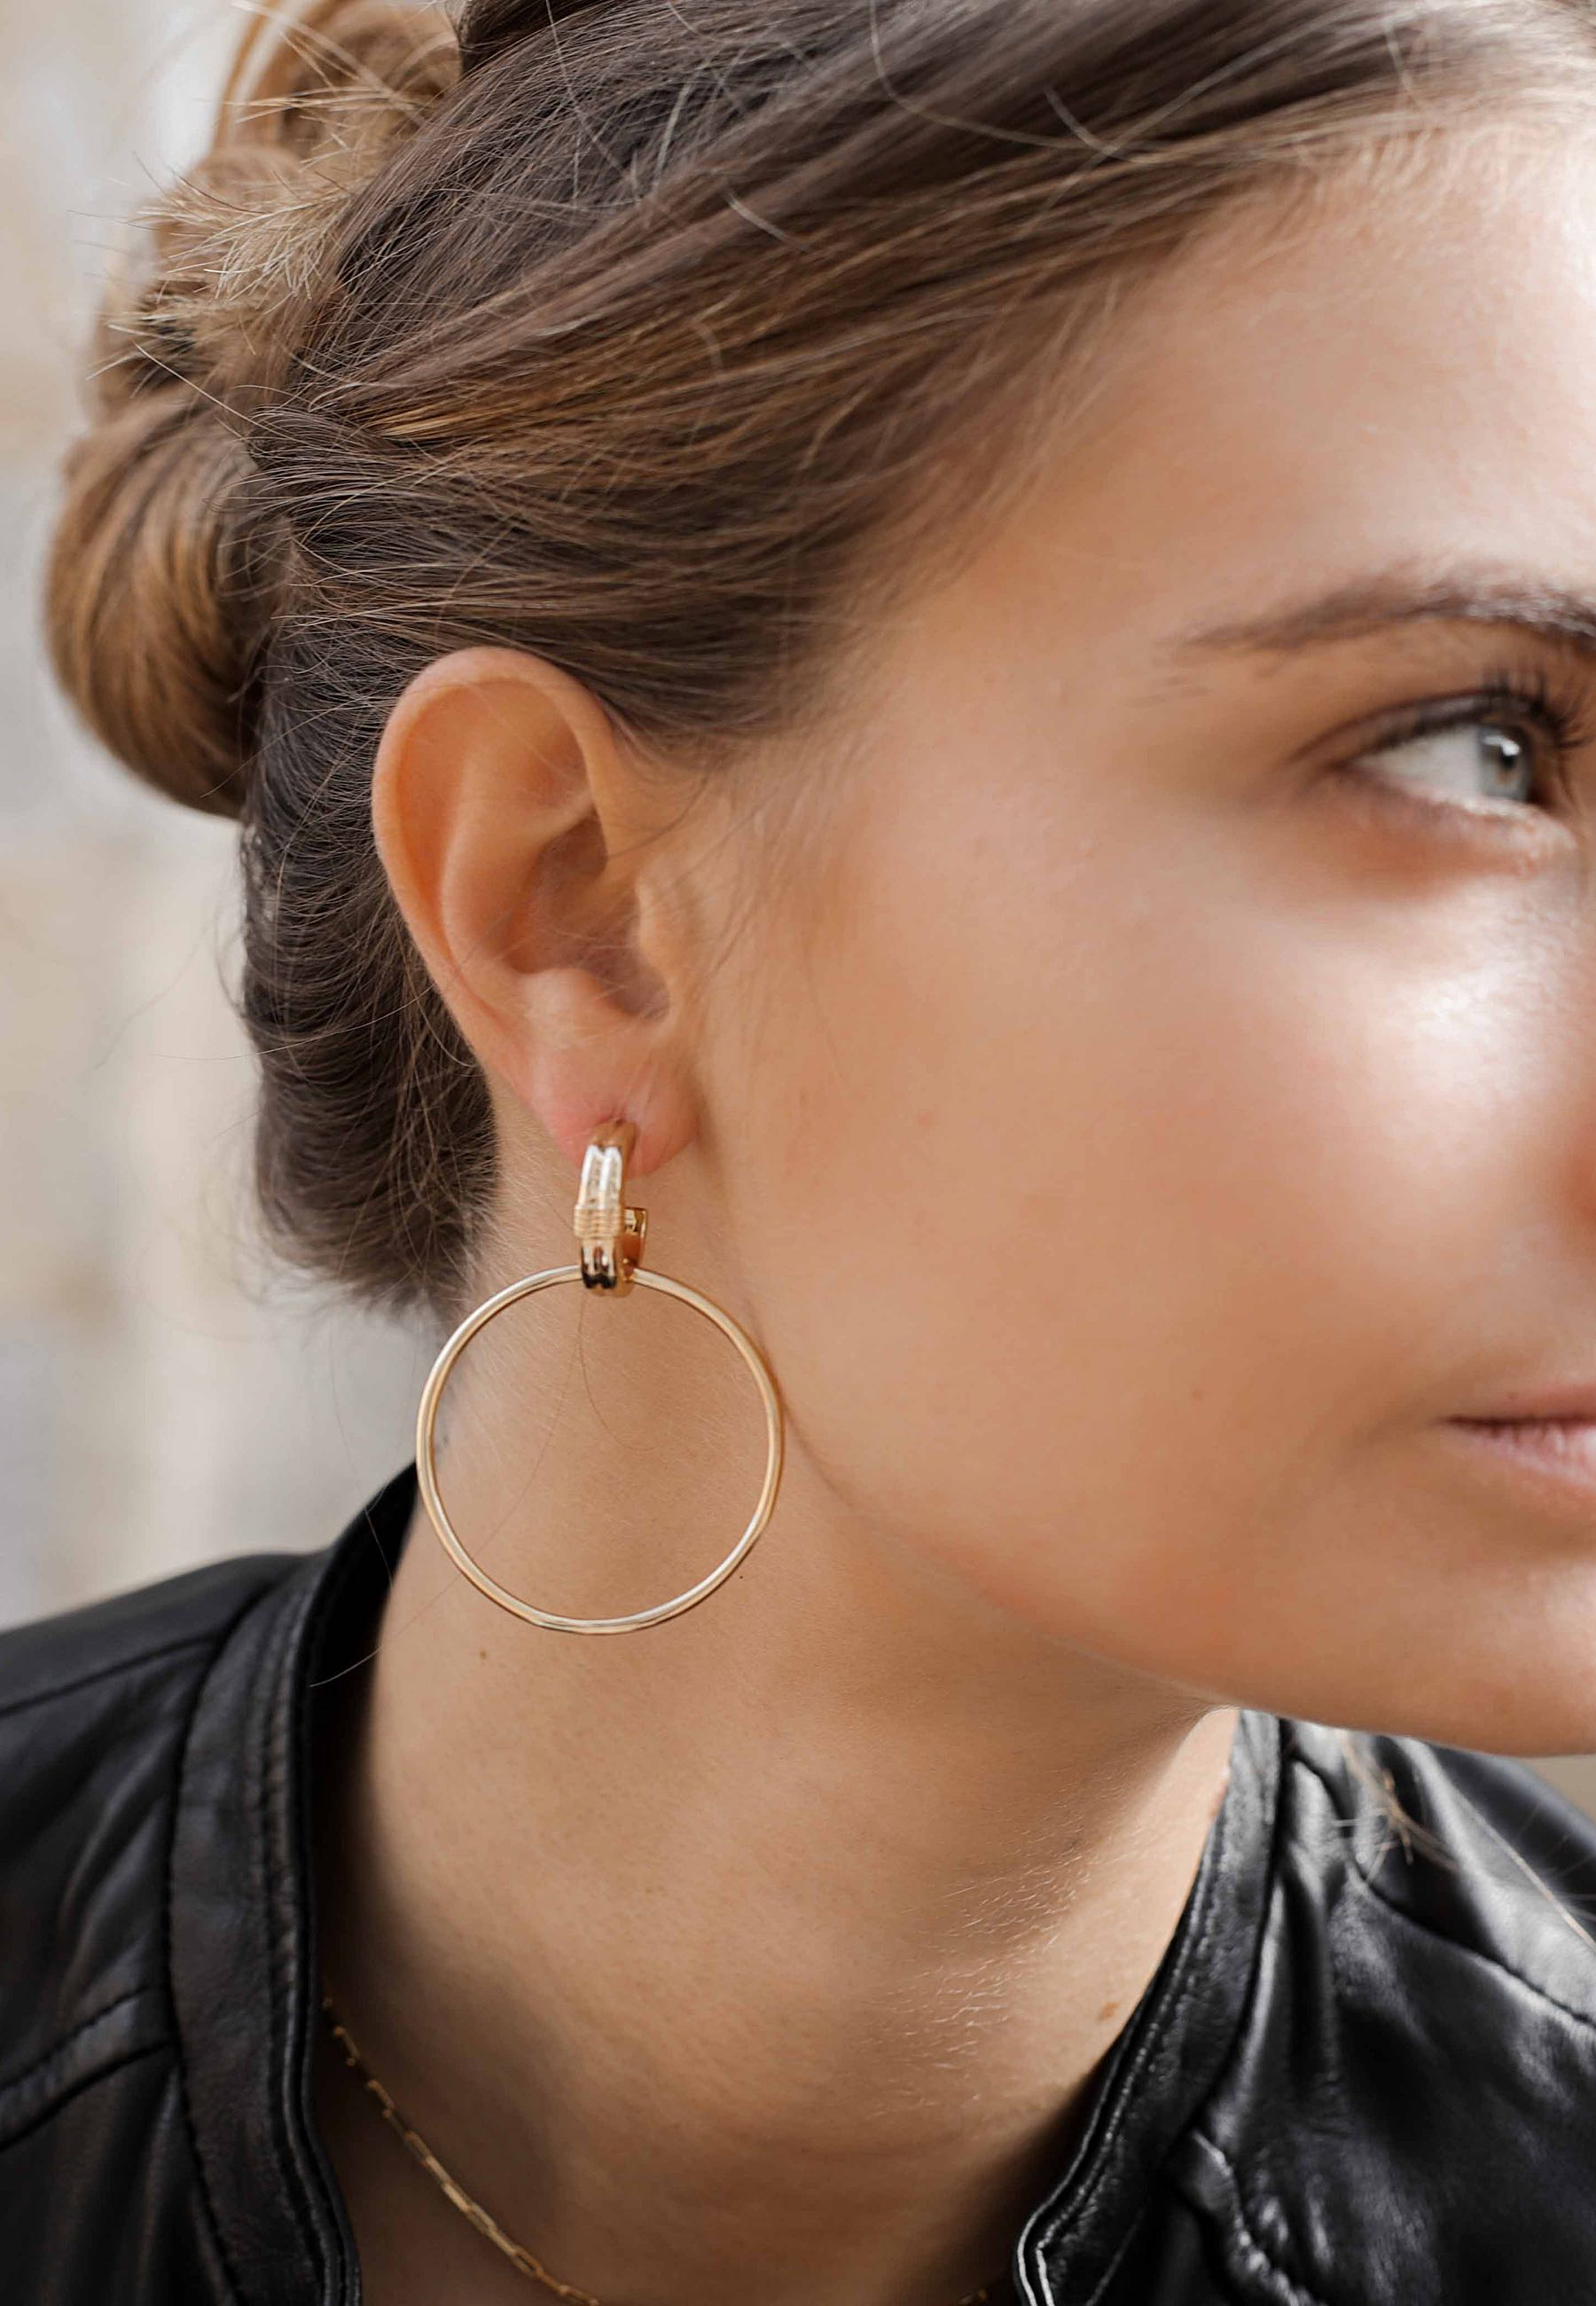 GRUNGE gold earrings